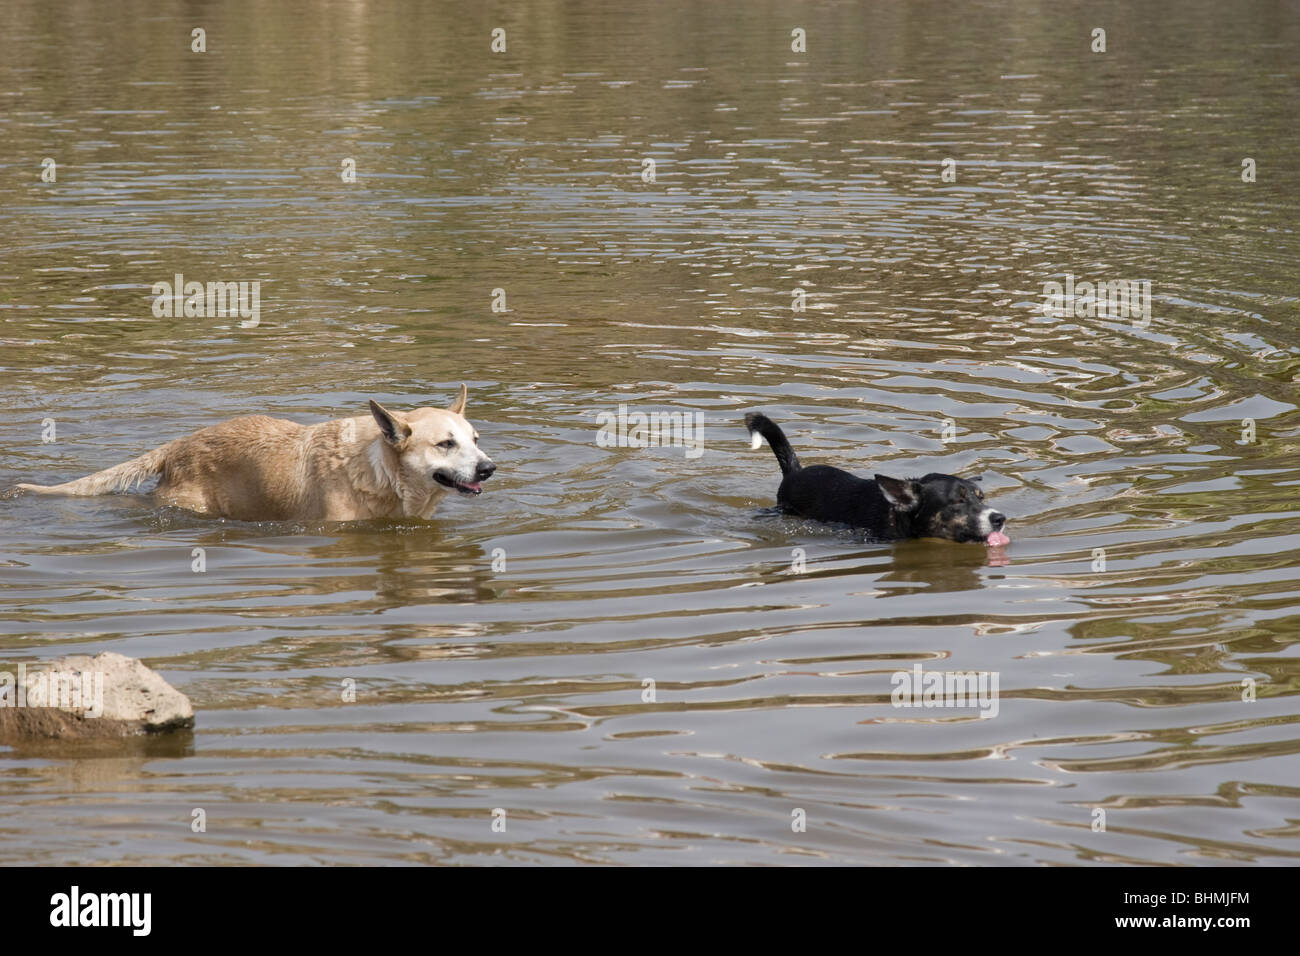 Dogs swimming in pond - Stock Image